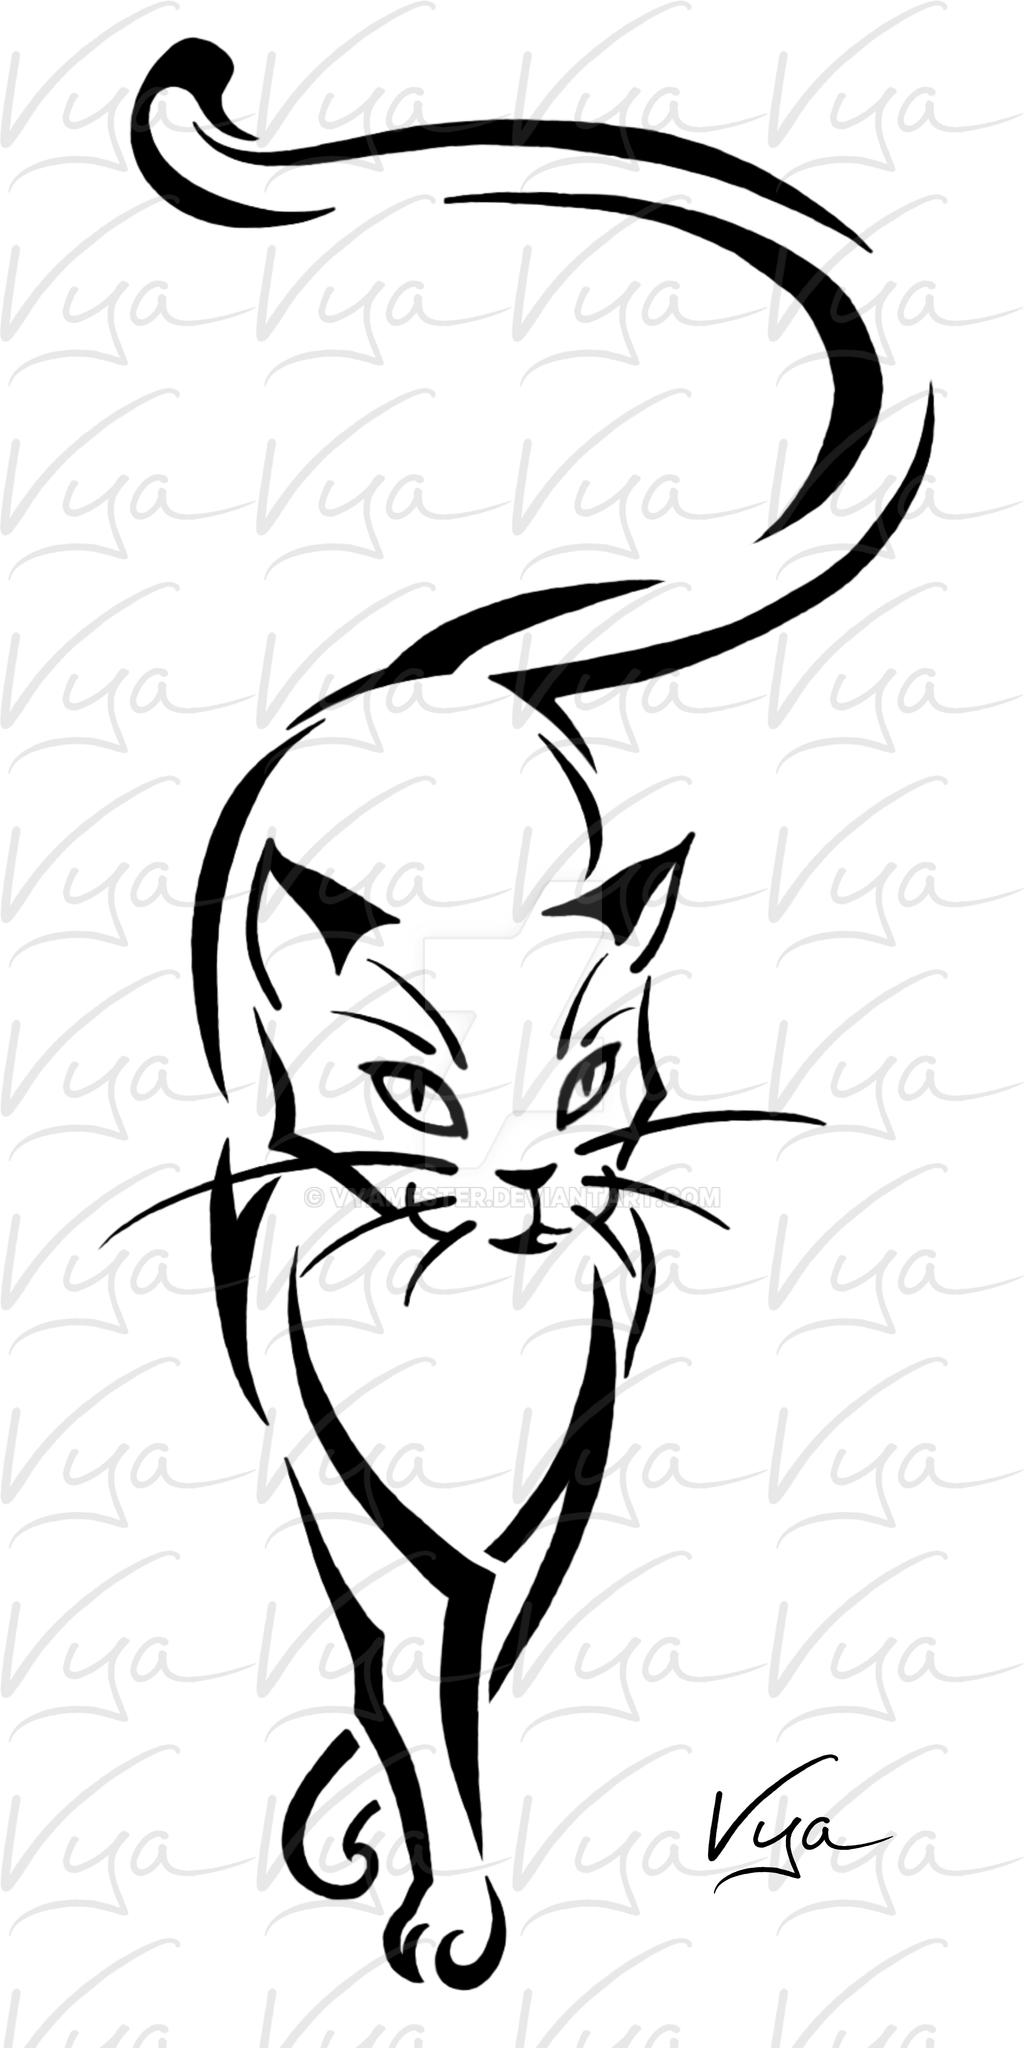 Drawing Lines Meaning : Cat tattoo by vyamester on deviantart